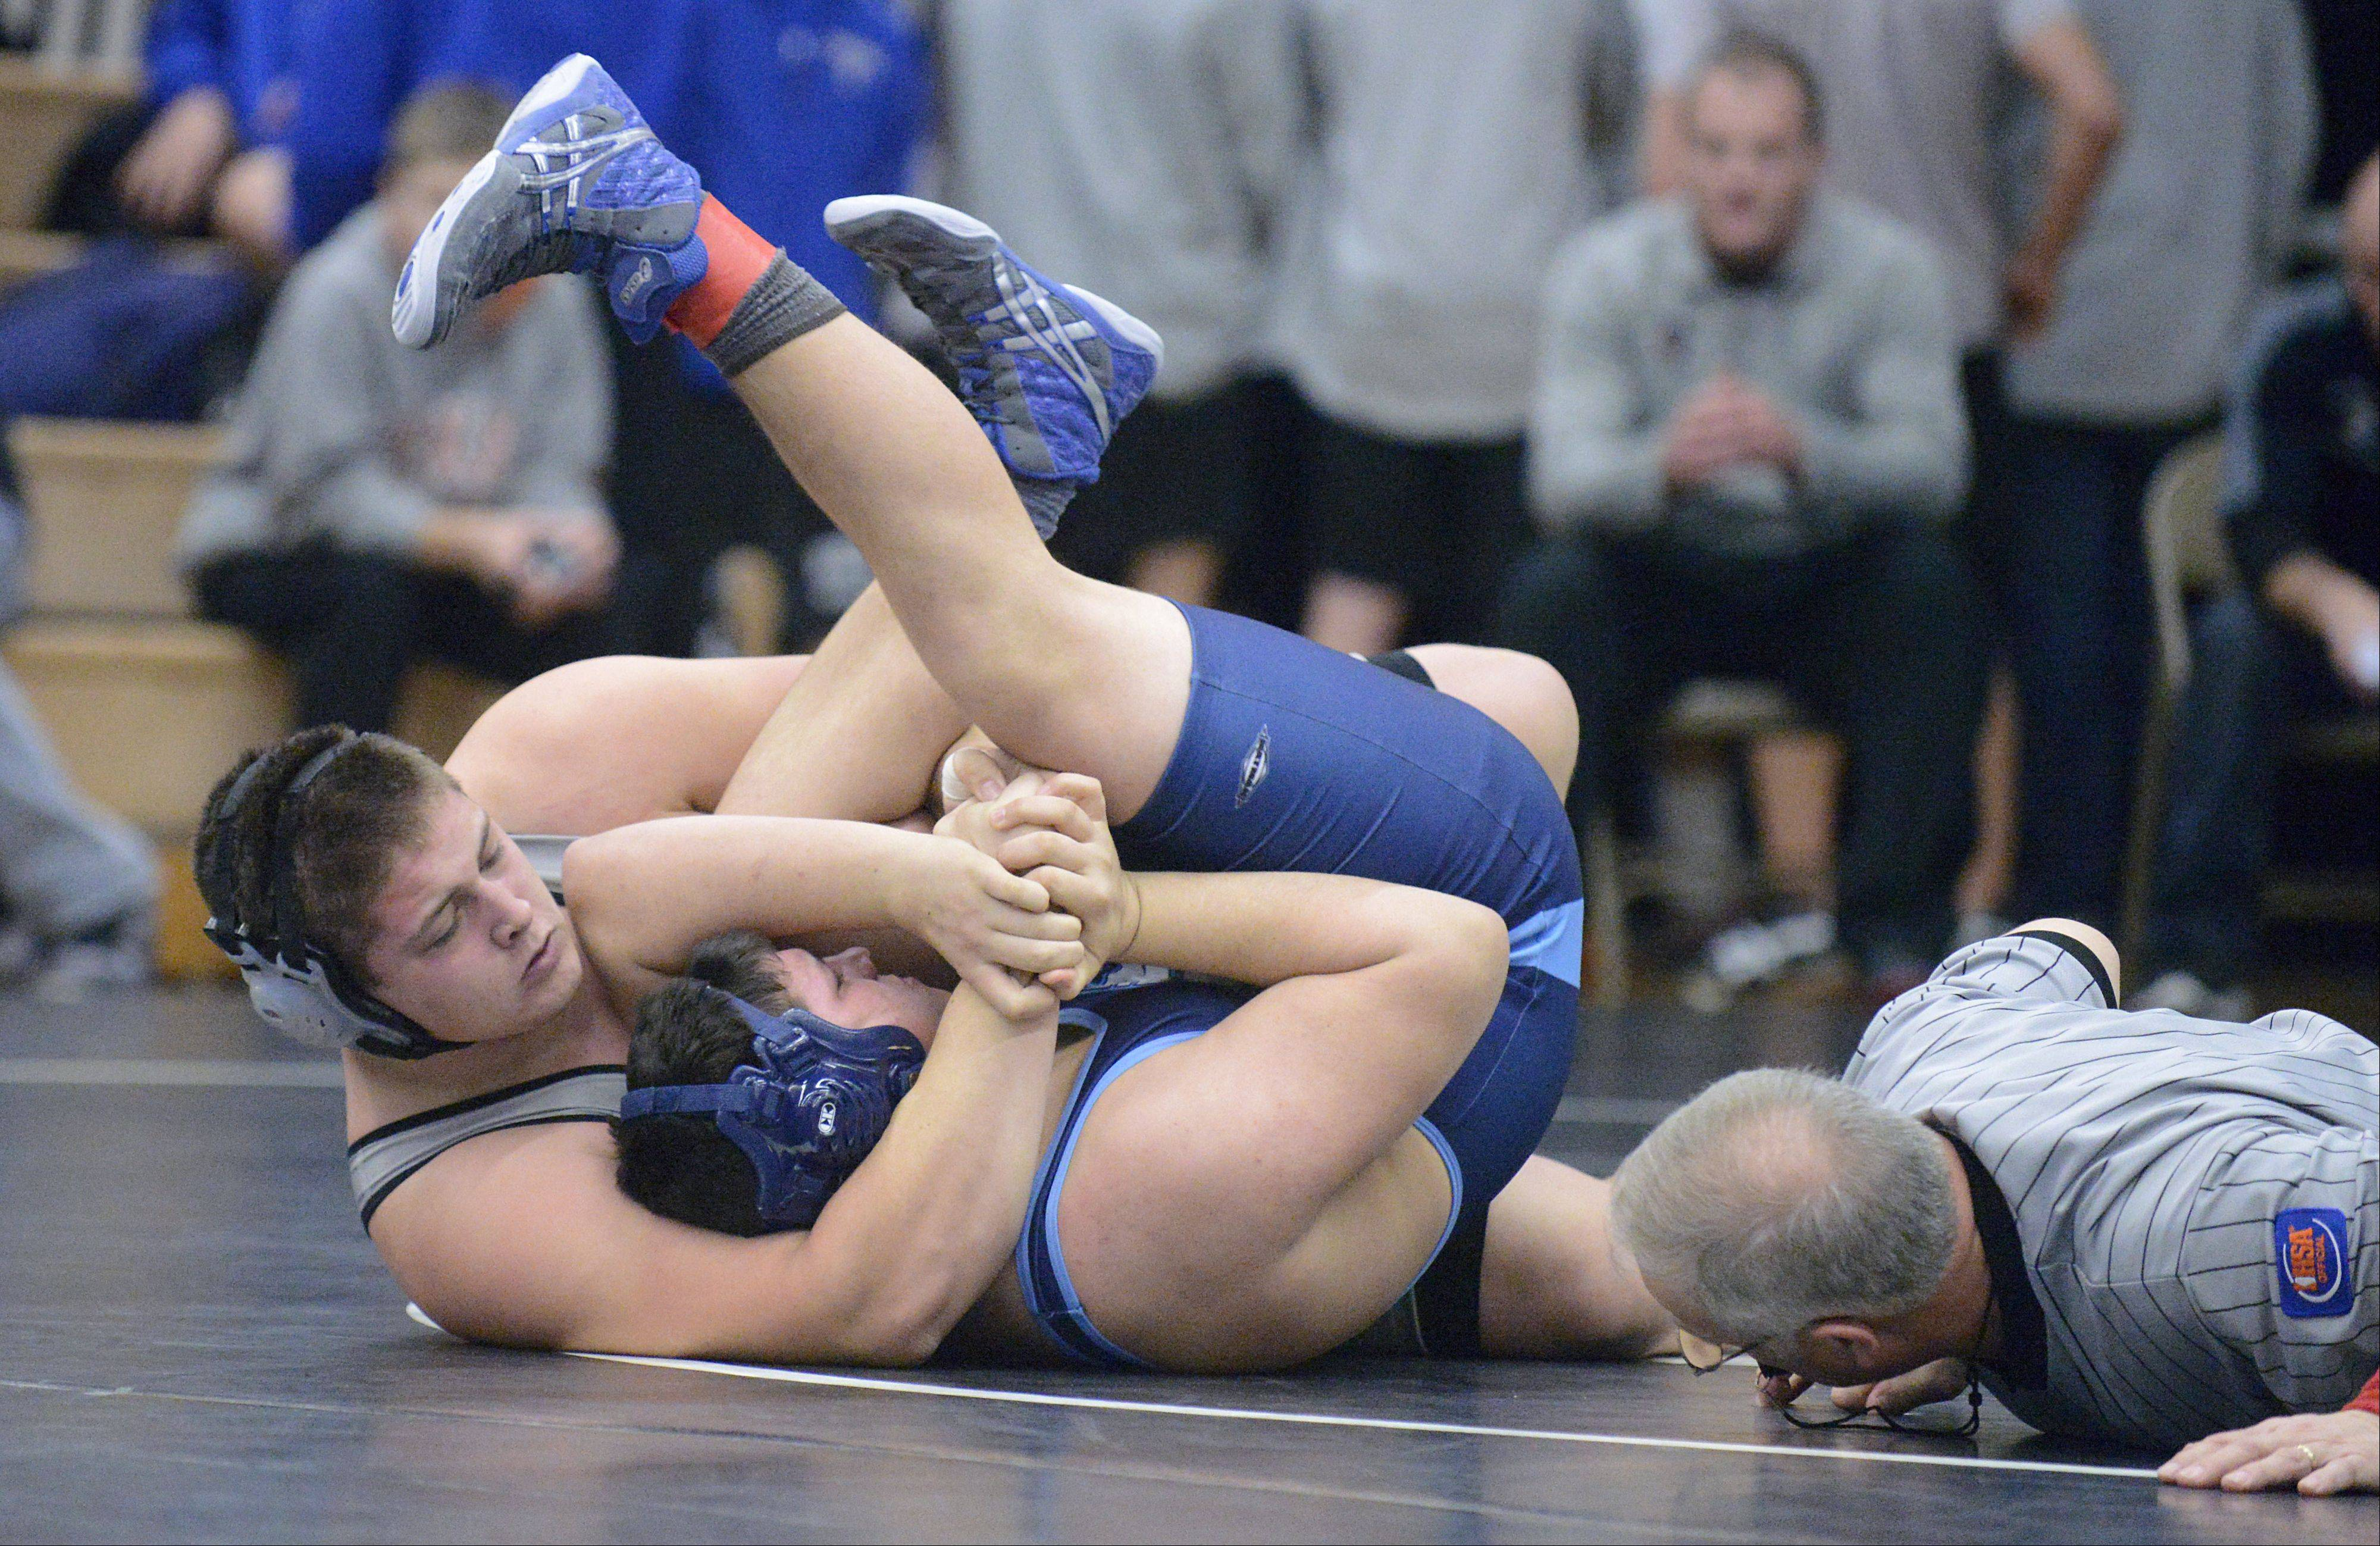 Kaneland's Zach Theis takes Prairie Ridge's Grant Rickets in the 285 pound match on Saturday, January 12.